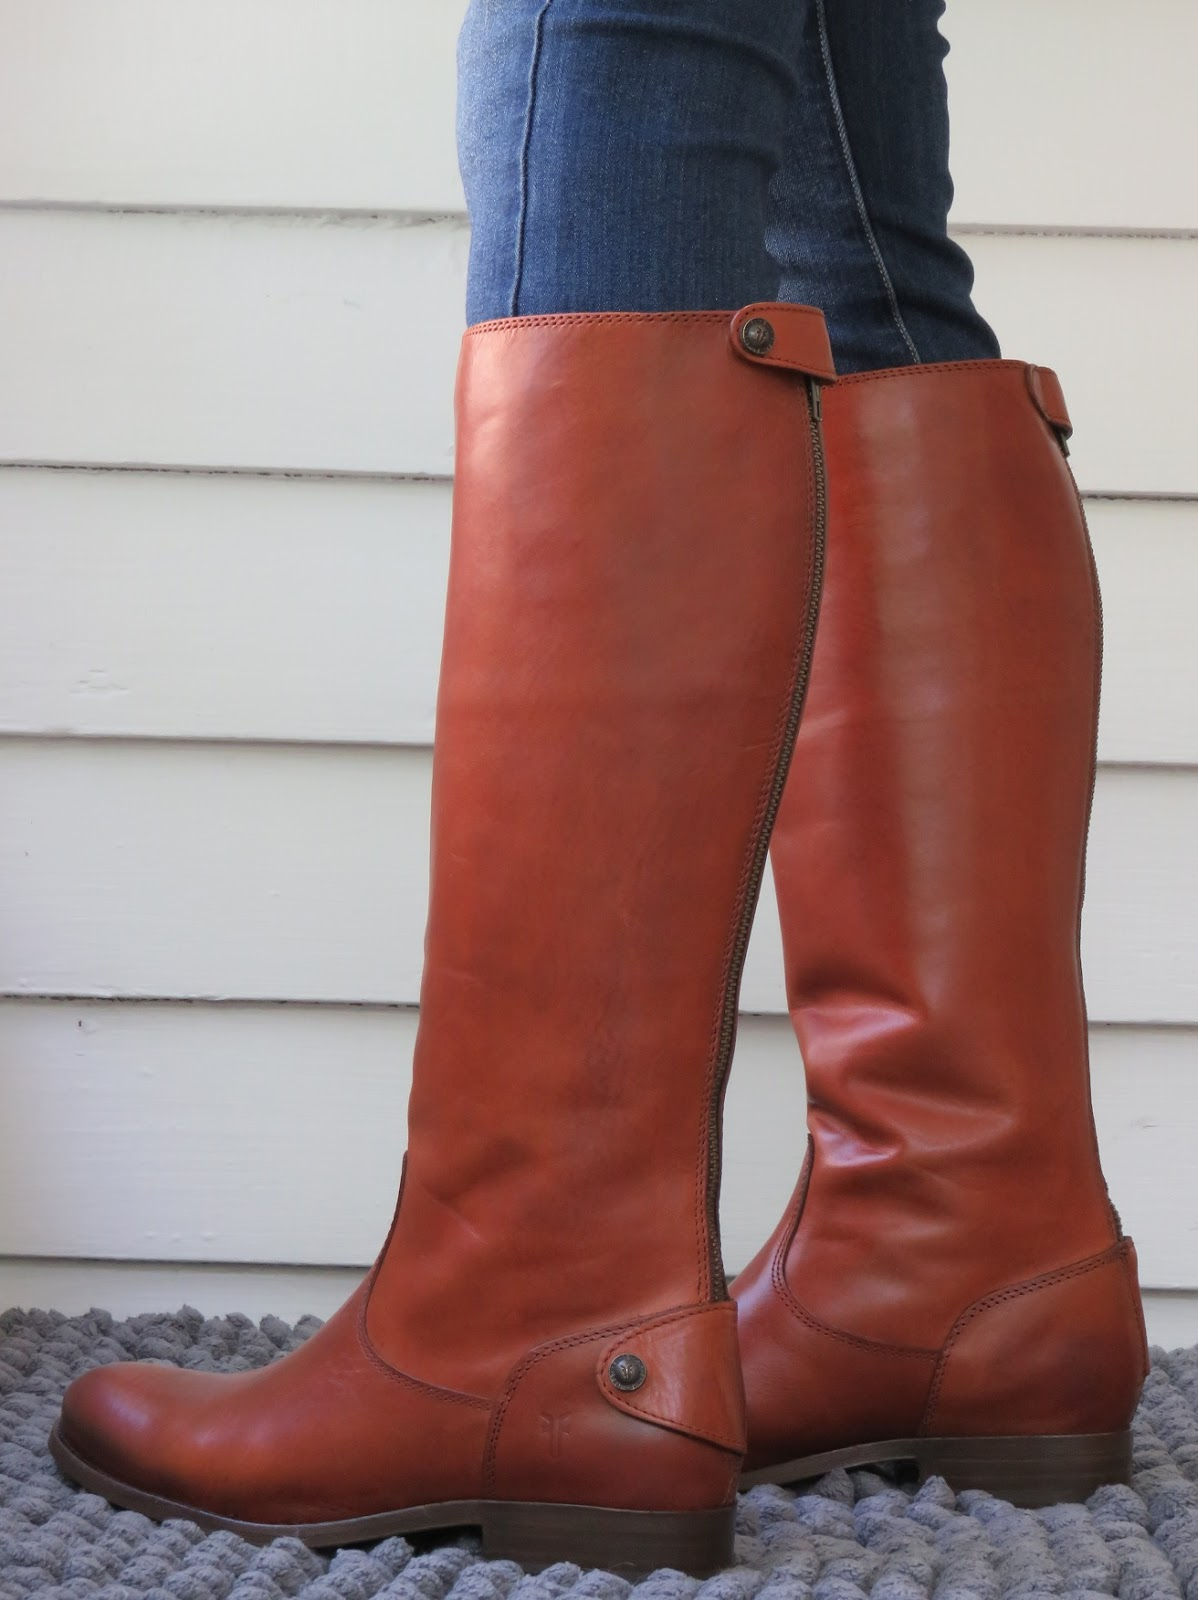 Howdy Slim! Riding Boots for Thin Calves: Frye Melissa Button Back Zip